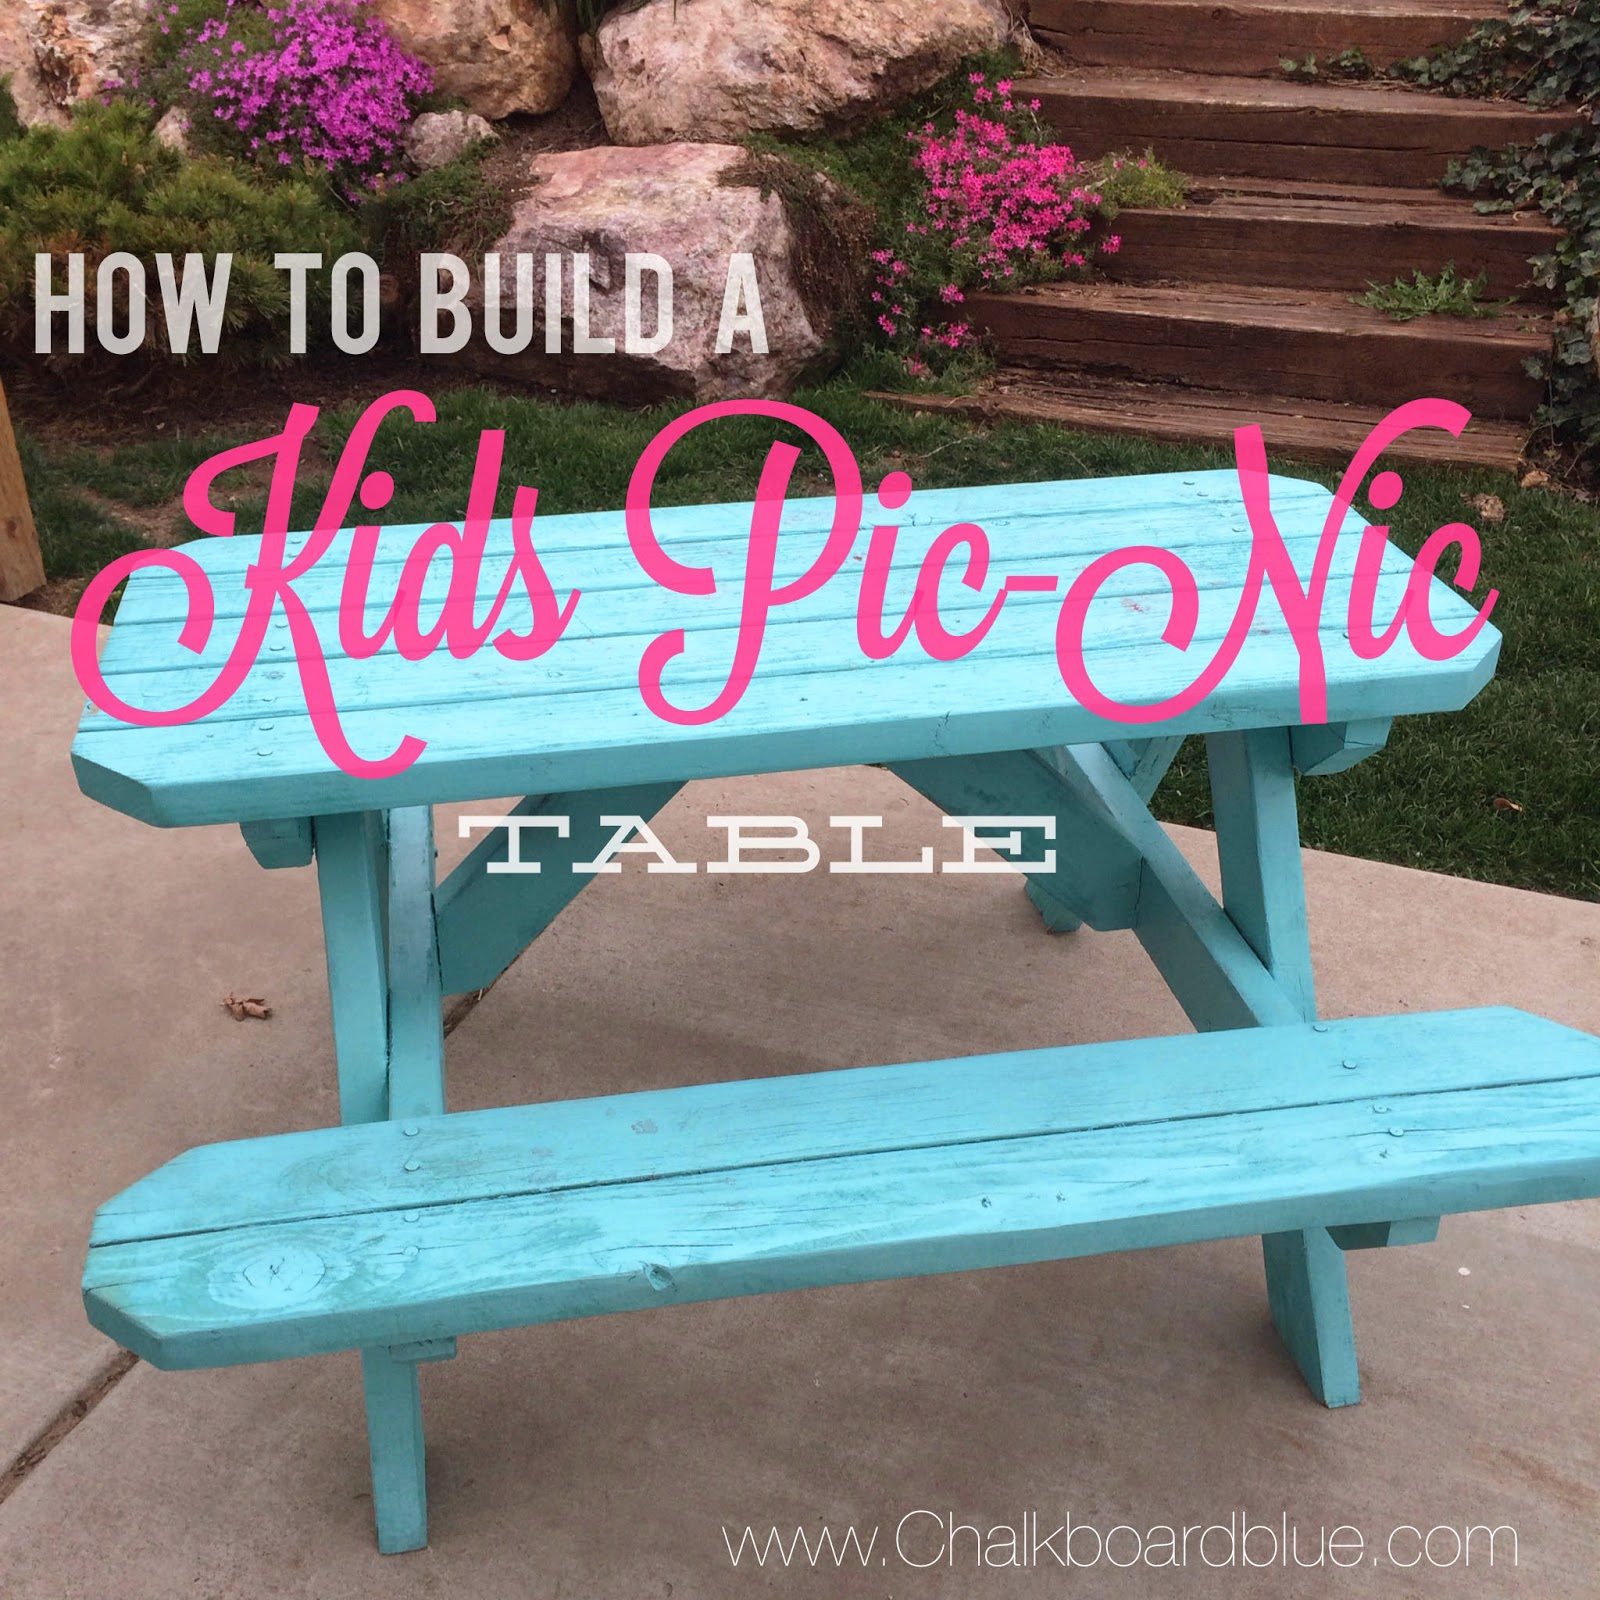 Length Of A Picnic Table Choice Image - Table Decoration Ideas